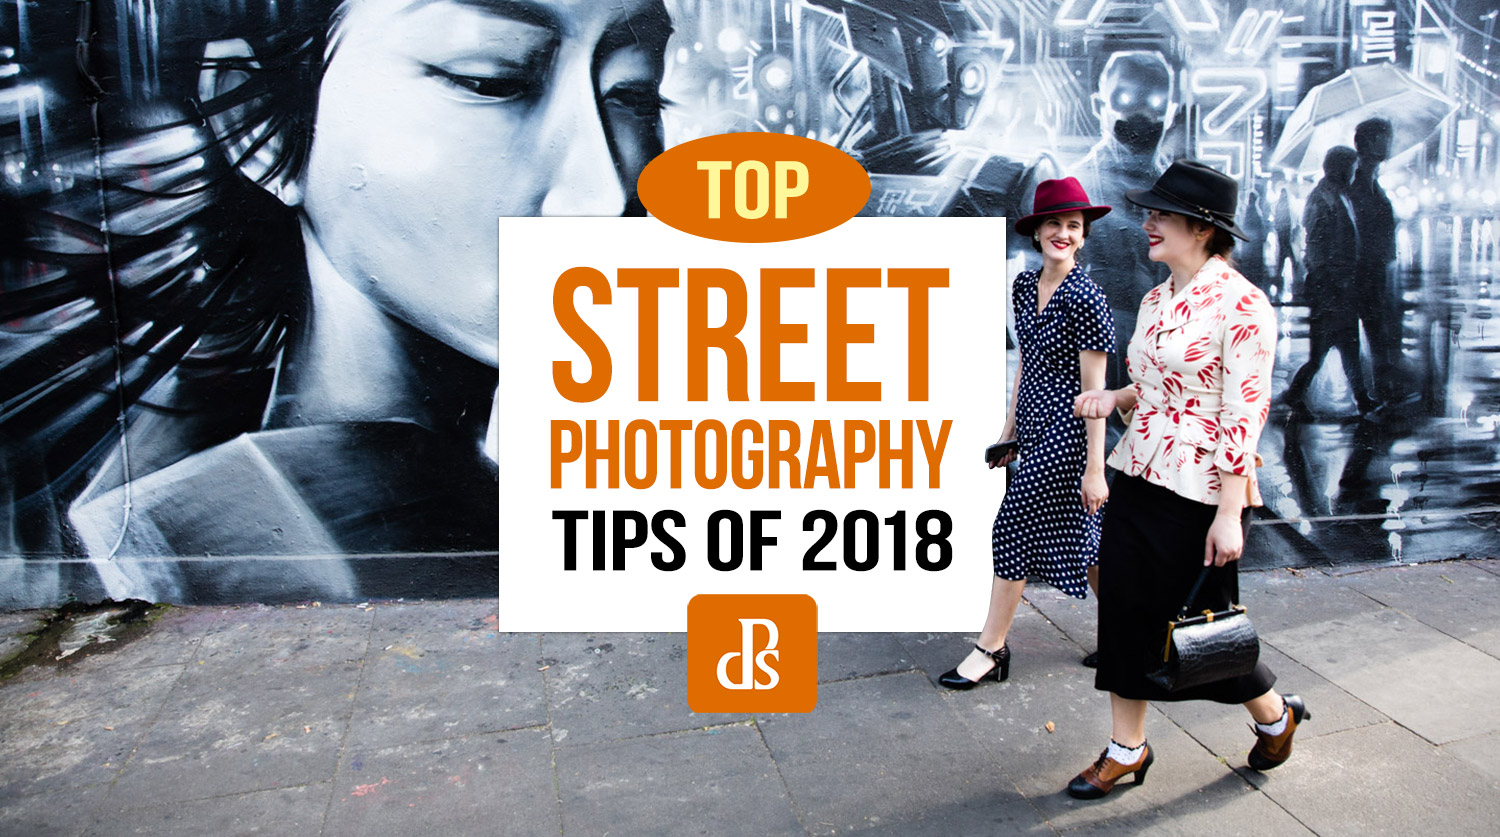 https://i1.wp.com/digital-photography-school.com/wp-content/uploads/2018/12/dps-top-street-photography-tips-2018.jpg?resize=1500%2C837&ssl=1